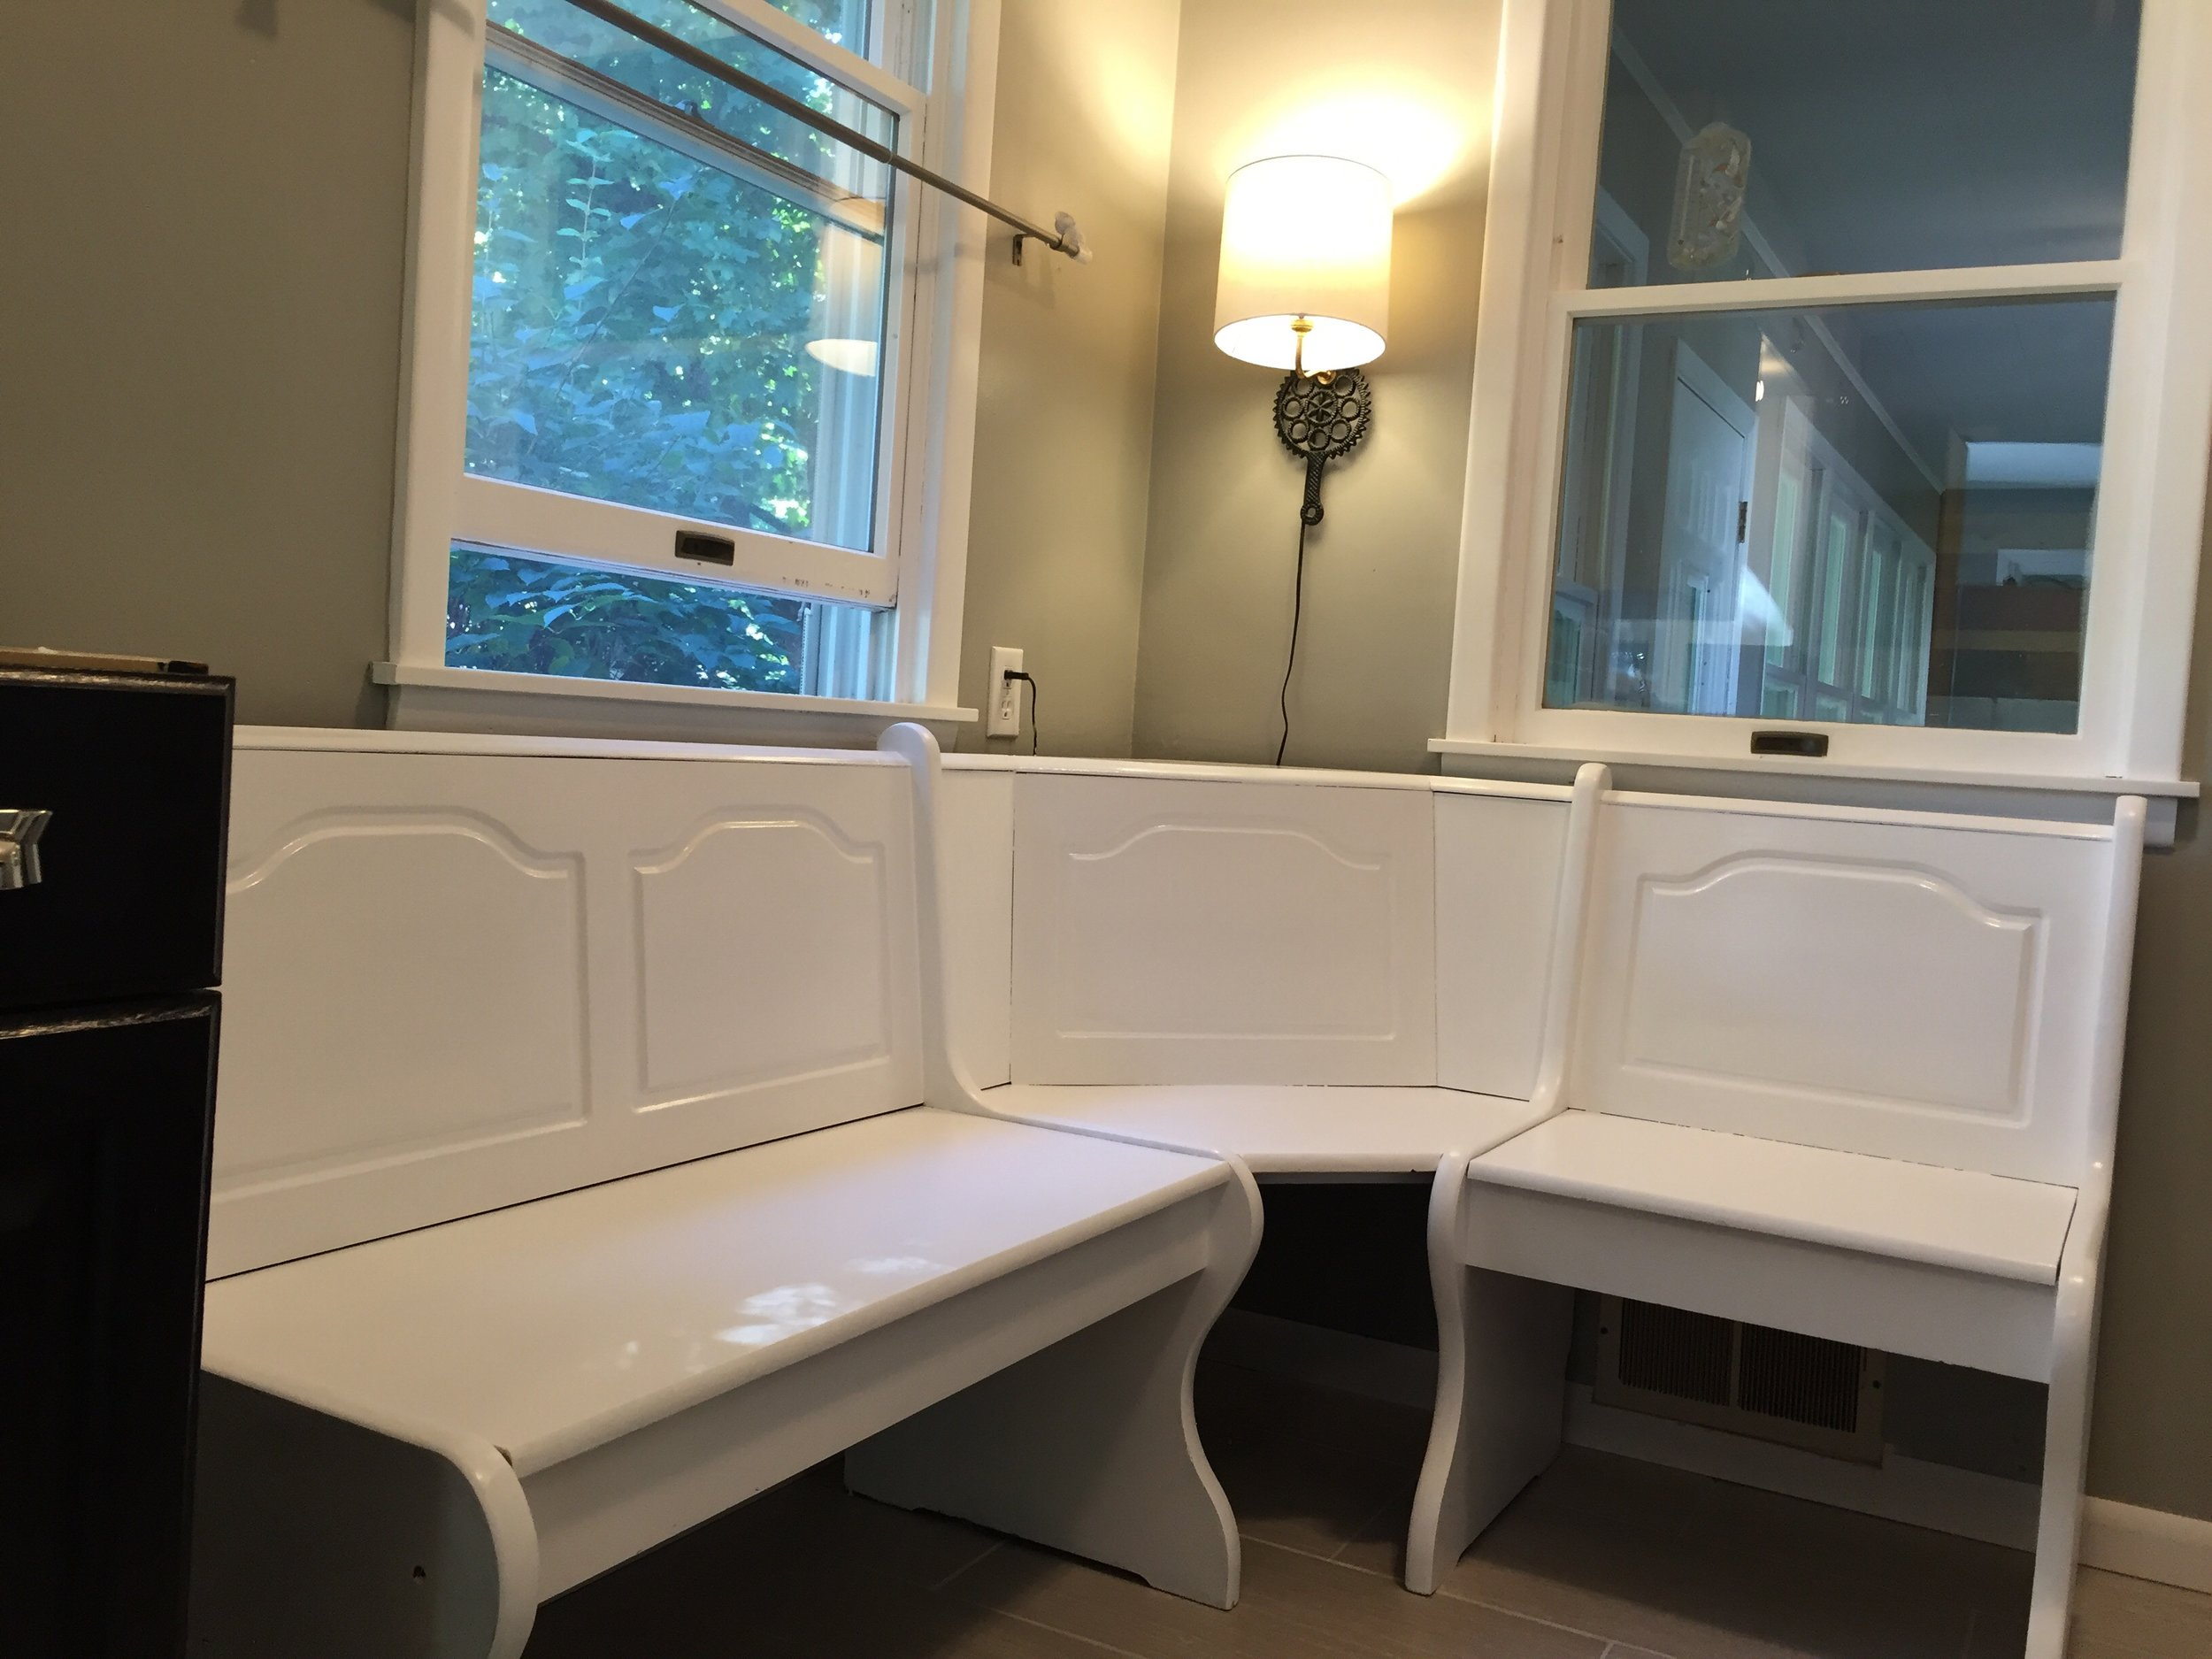 The banquette got painted this week too